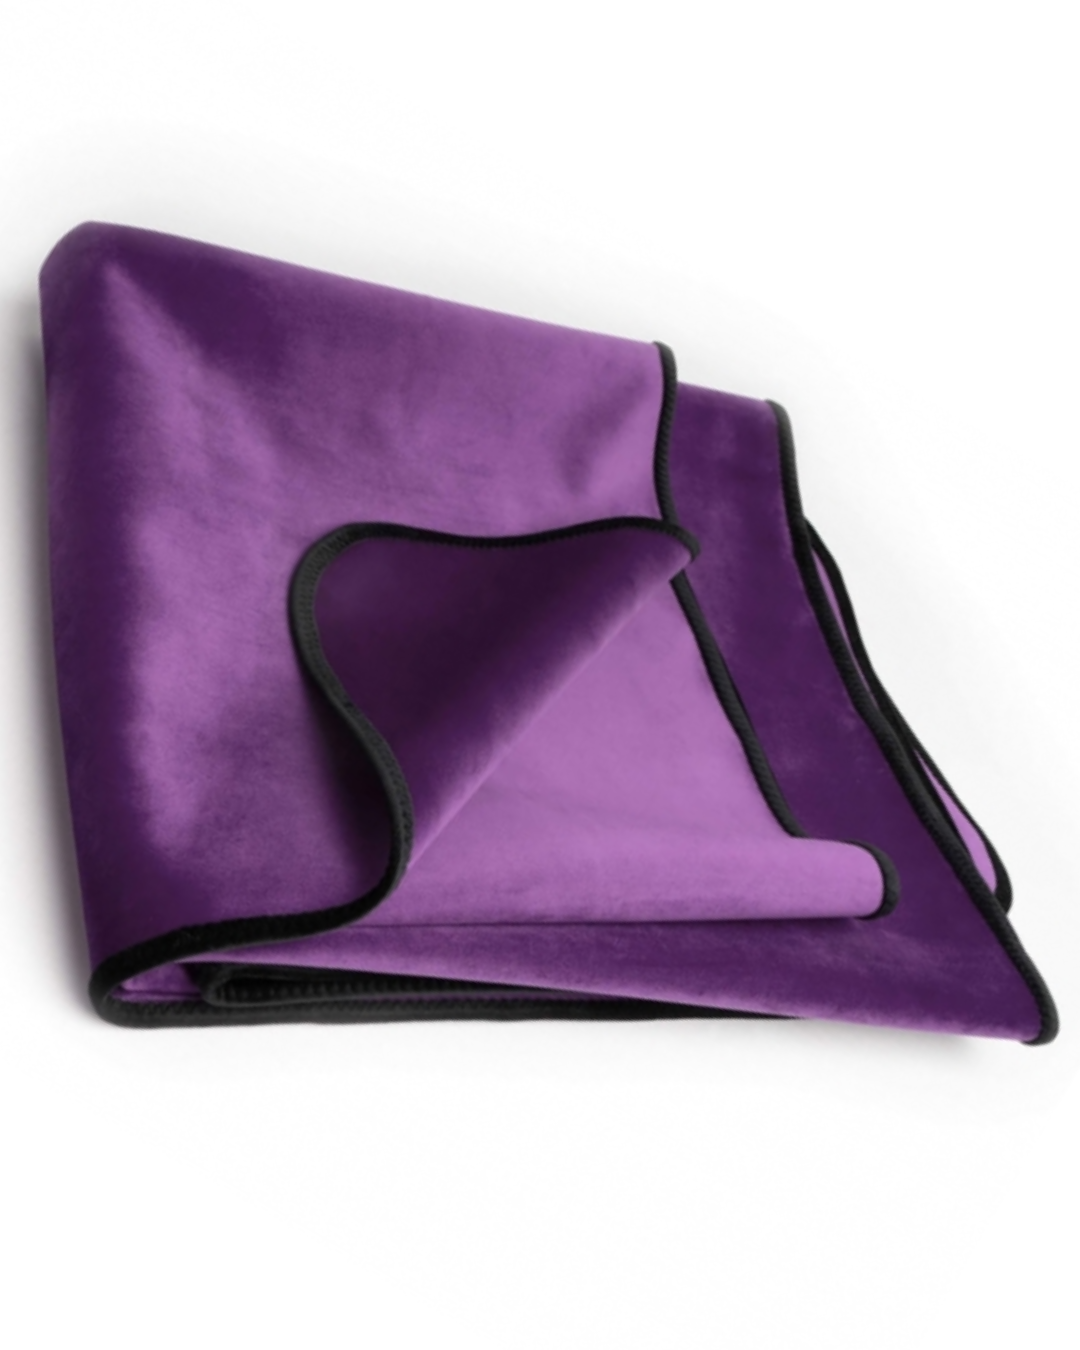 "Liberator Fascinator Travel Throw Velvety Sex Blanket 53"" x 36"" - Assorted Colours"